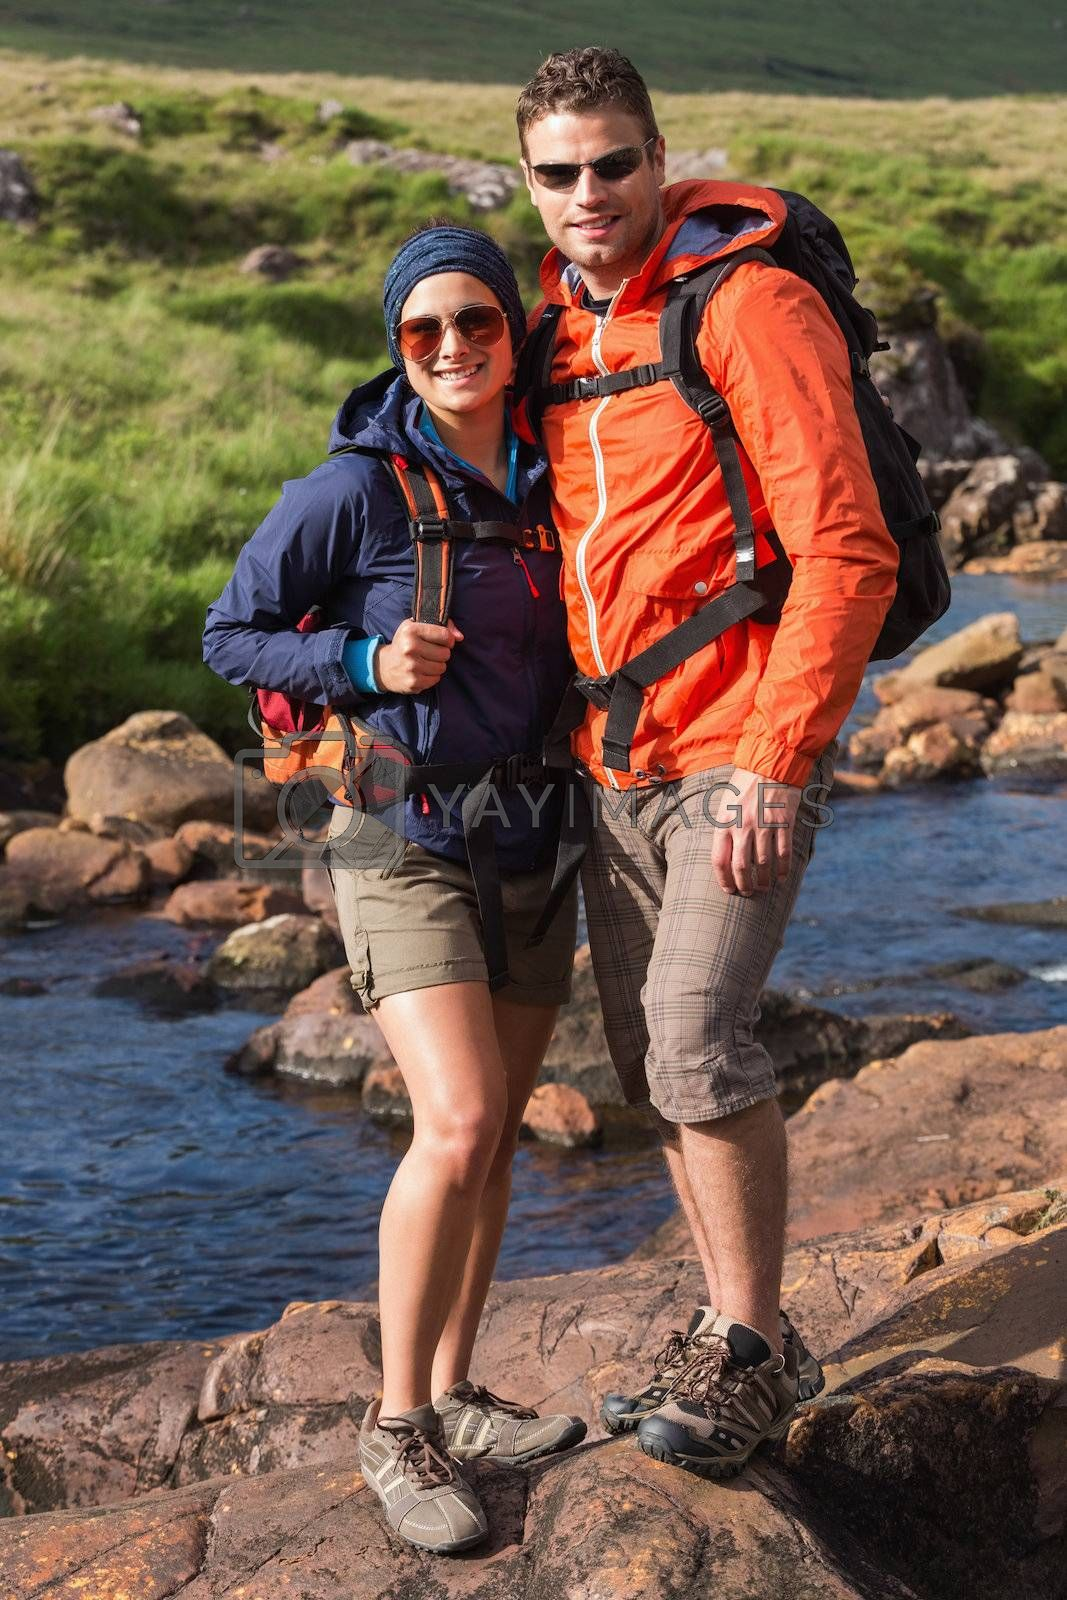 Smiling couple on a hike by Wavebreakmedia